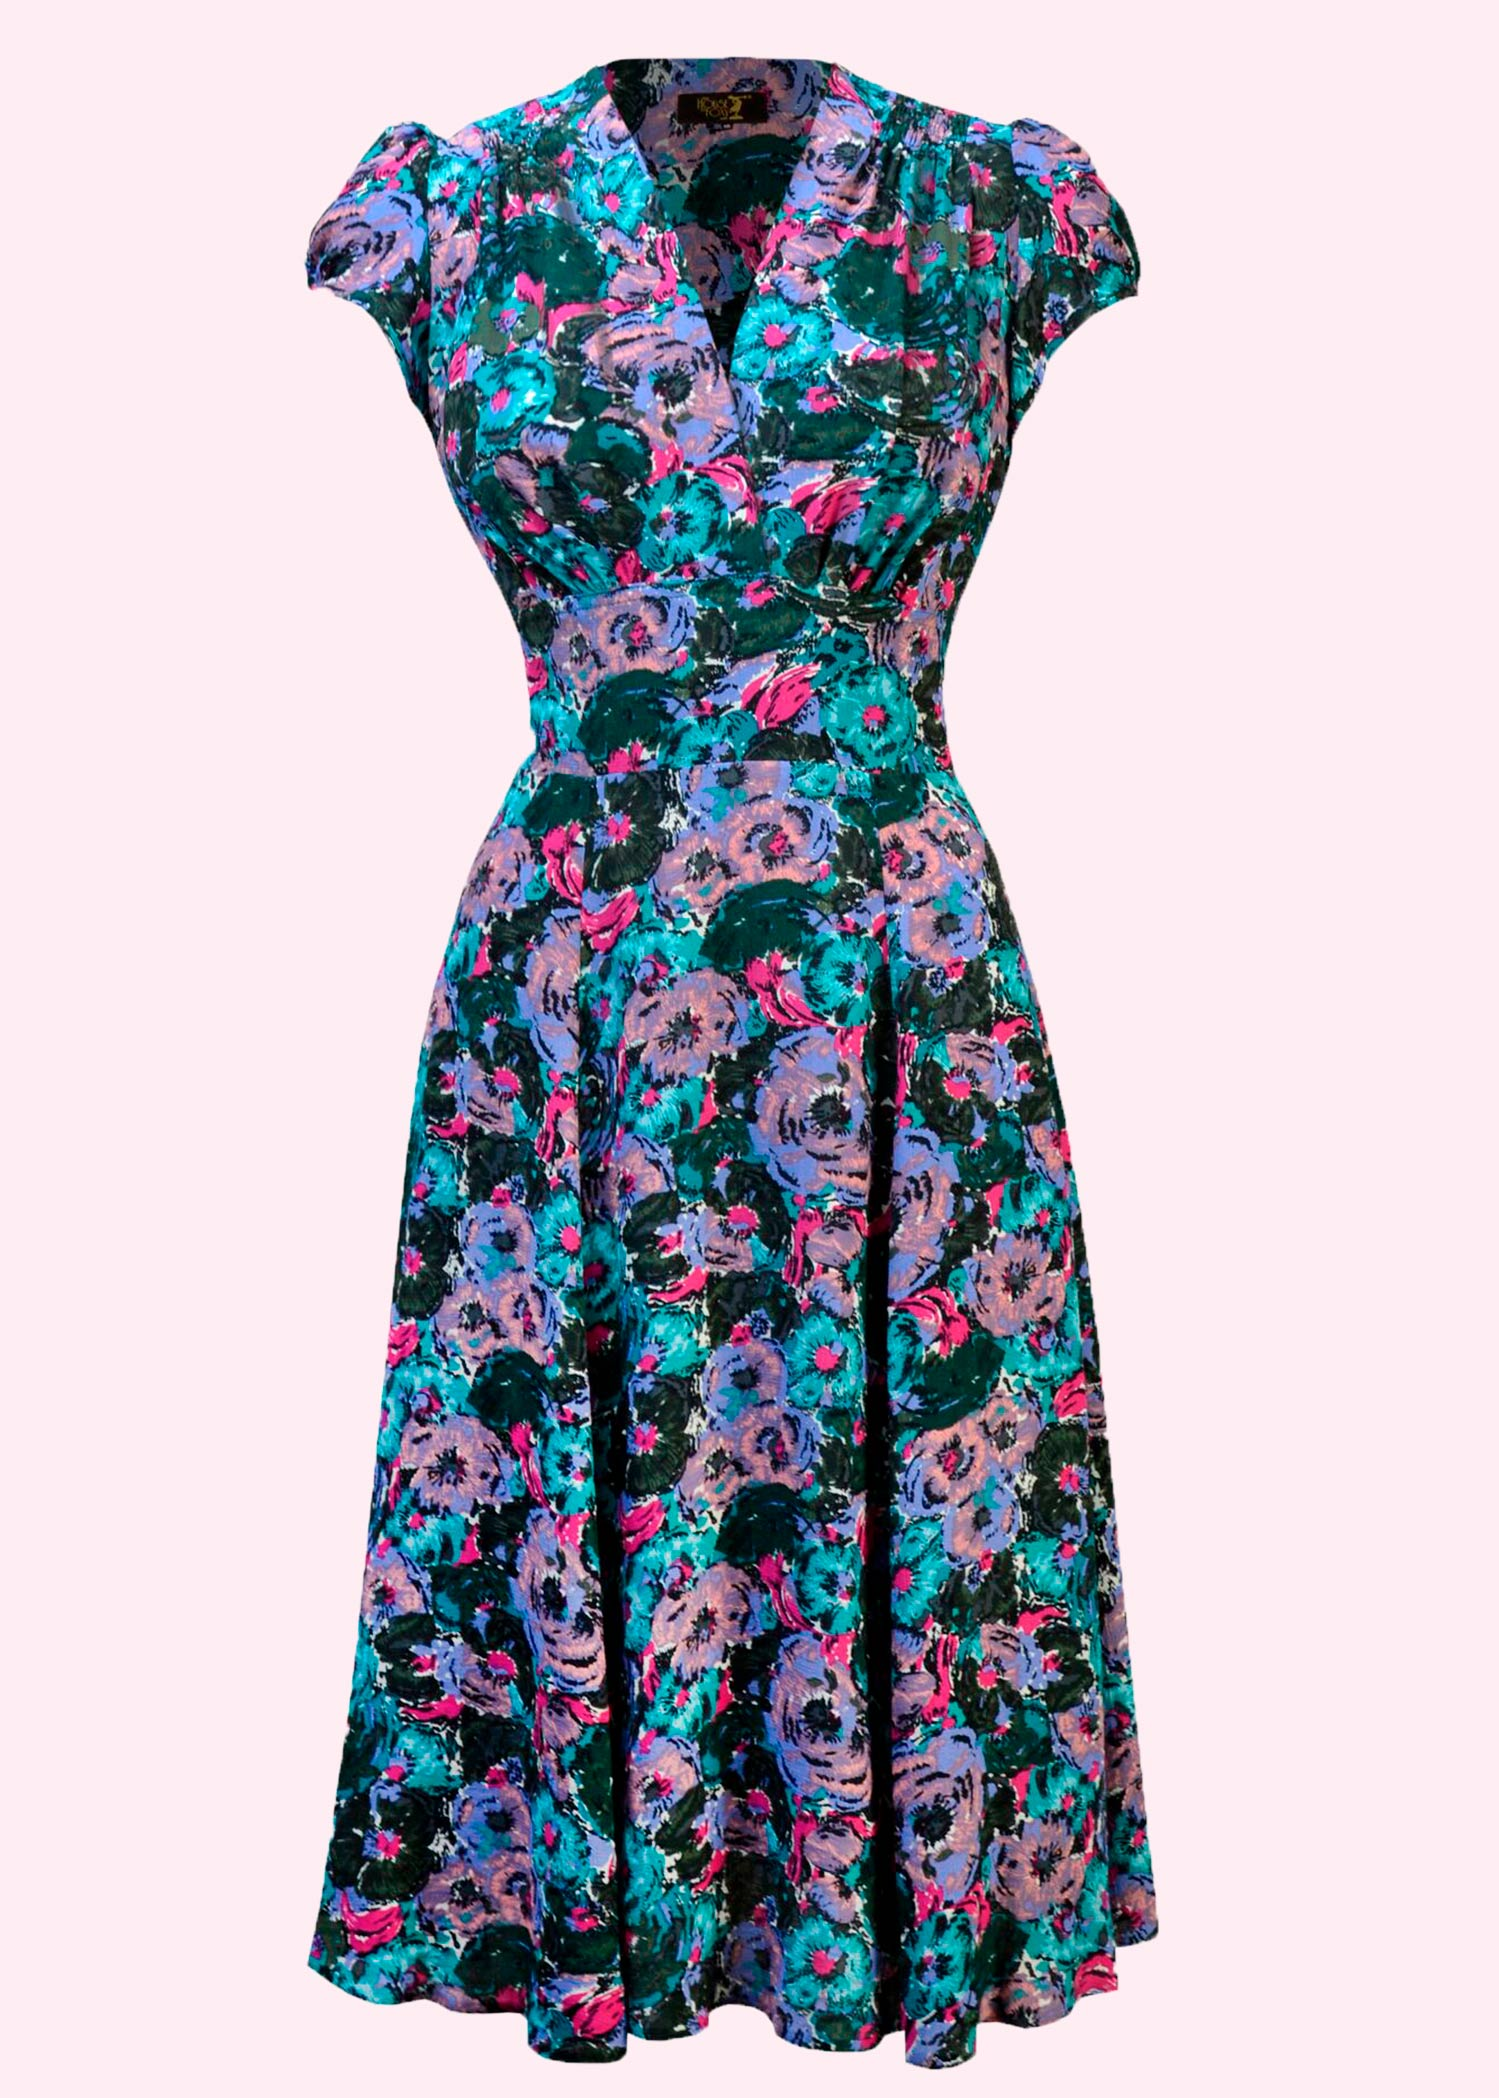 Vintage style 40s dress in floral print from House Of Foxy